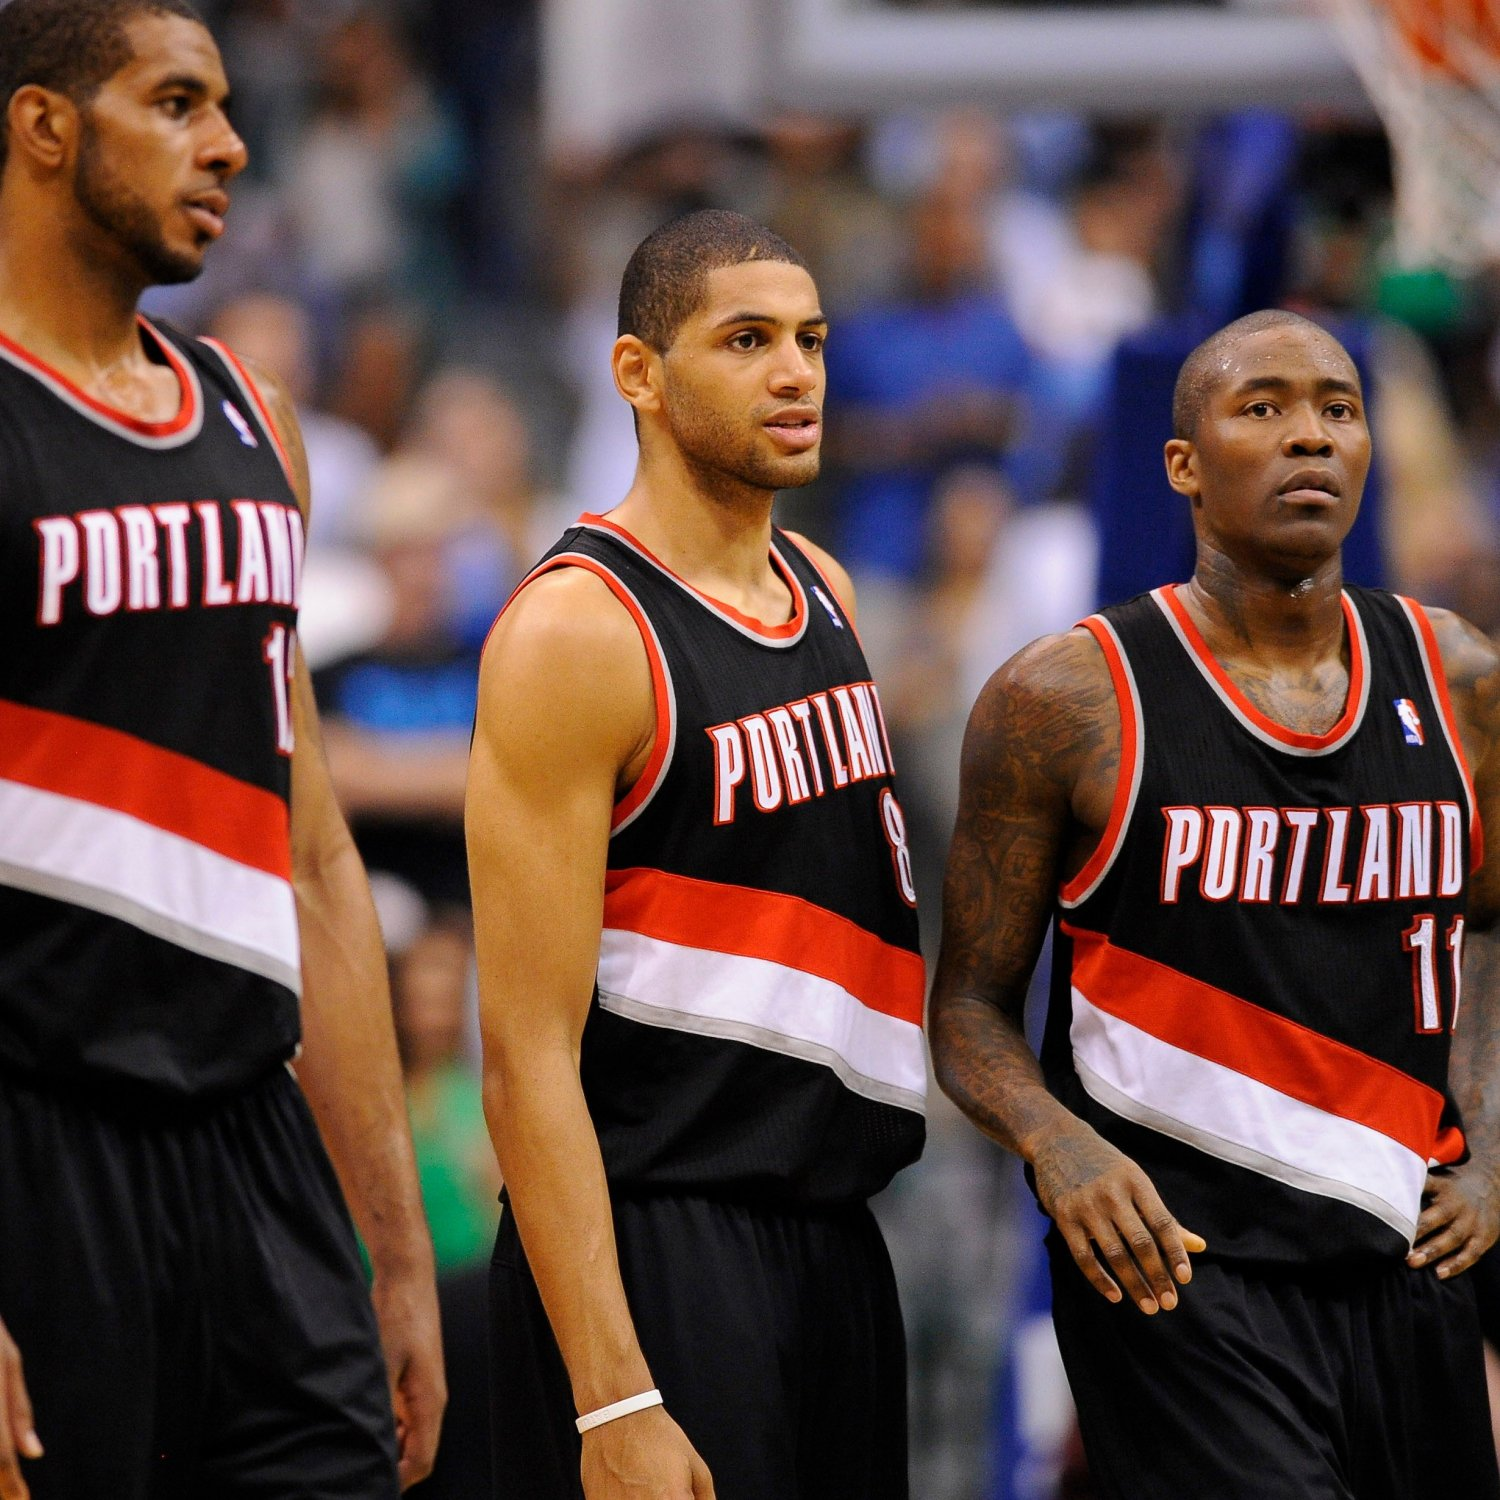 Portland Blazers Roster 2012: Portland Trail Blazers: 10 Realistic Expectations For 2012